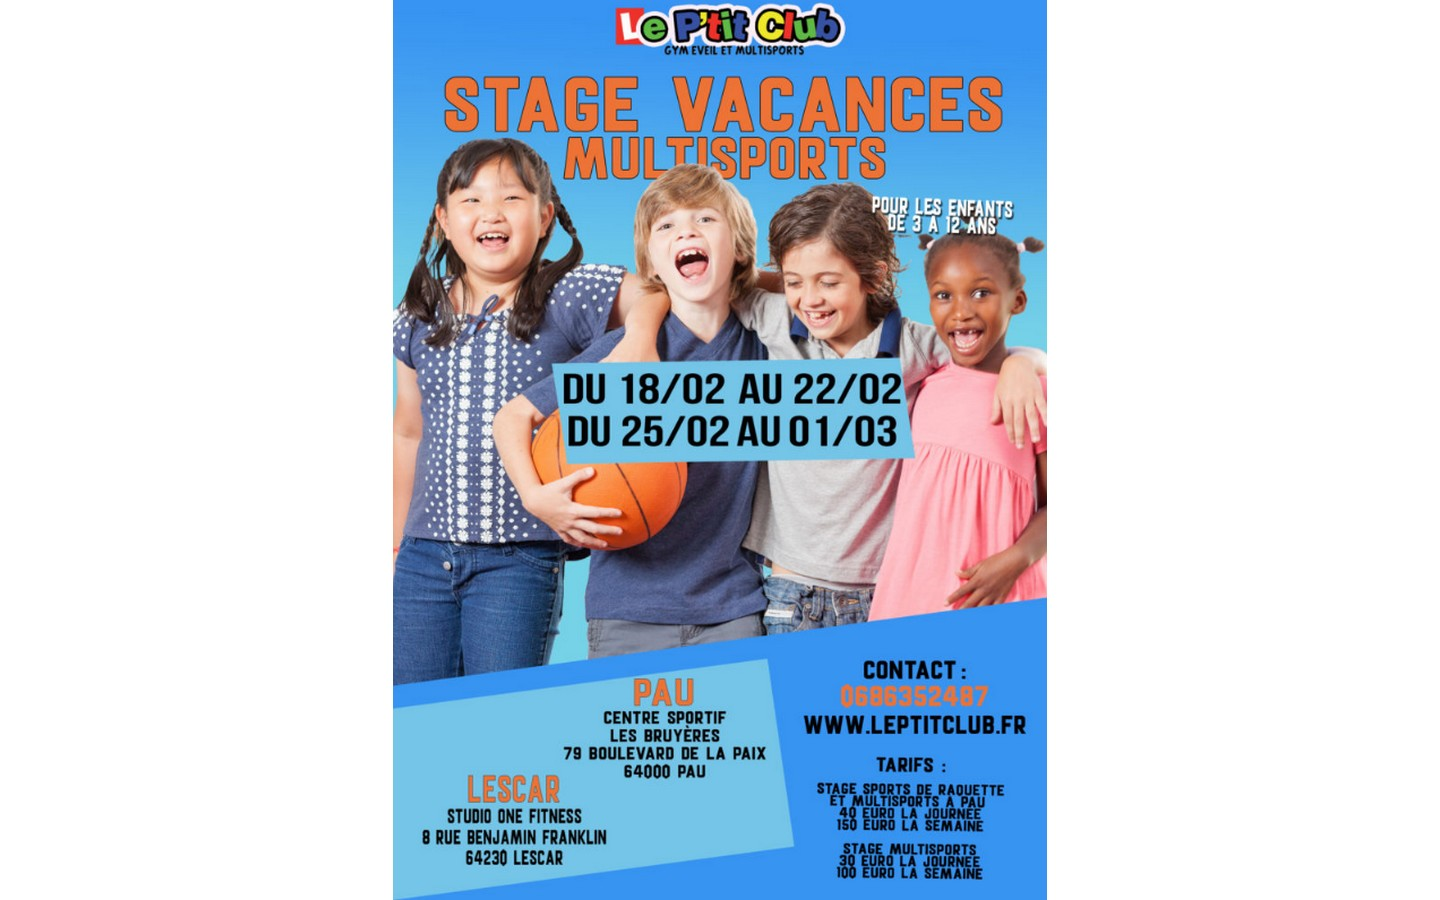 Le-P'tit-club-Lescar---Stage-Vacances-Multisports